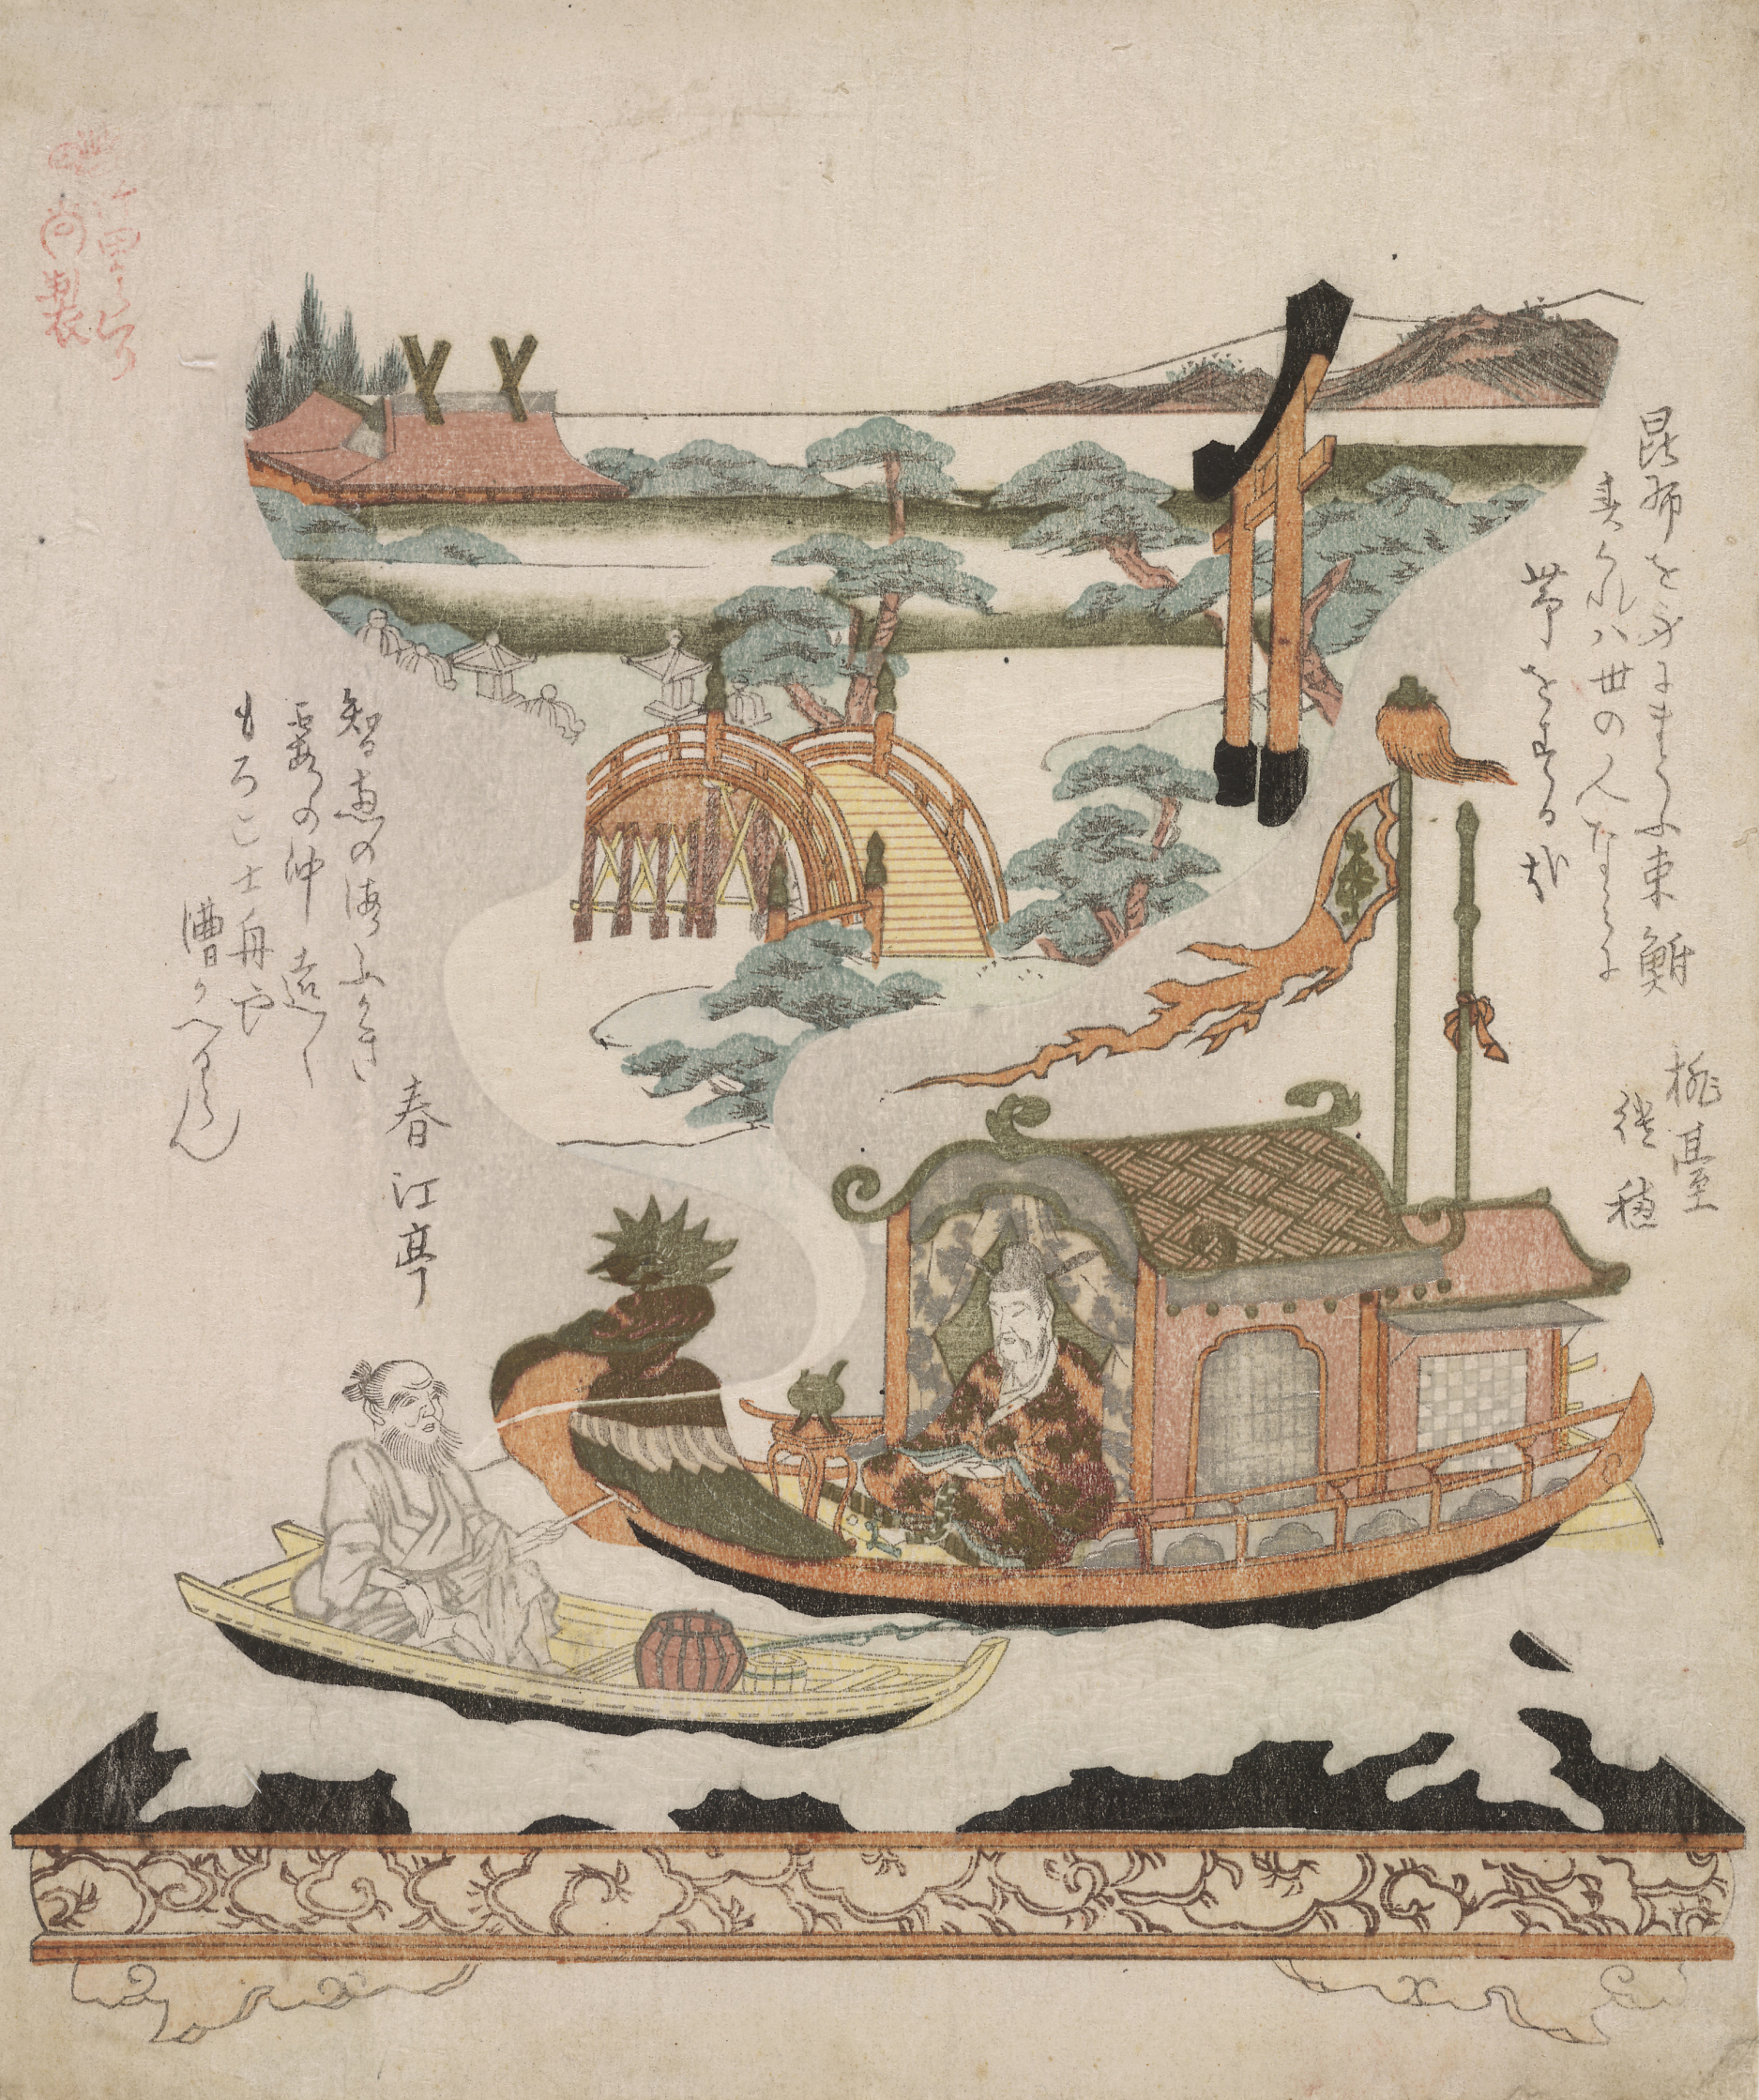 A colour woodblock print showing the   Sumiyoshi Taisha Shrine, with green spaces, trees, bridges and boats.